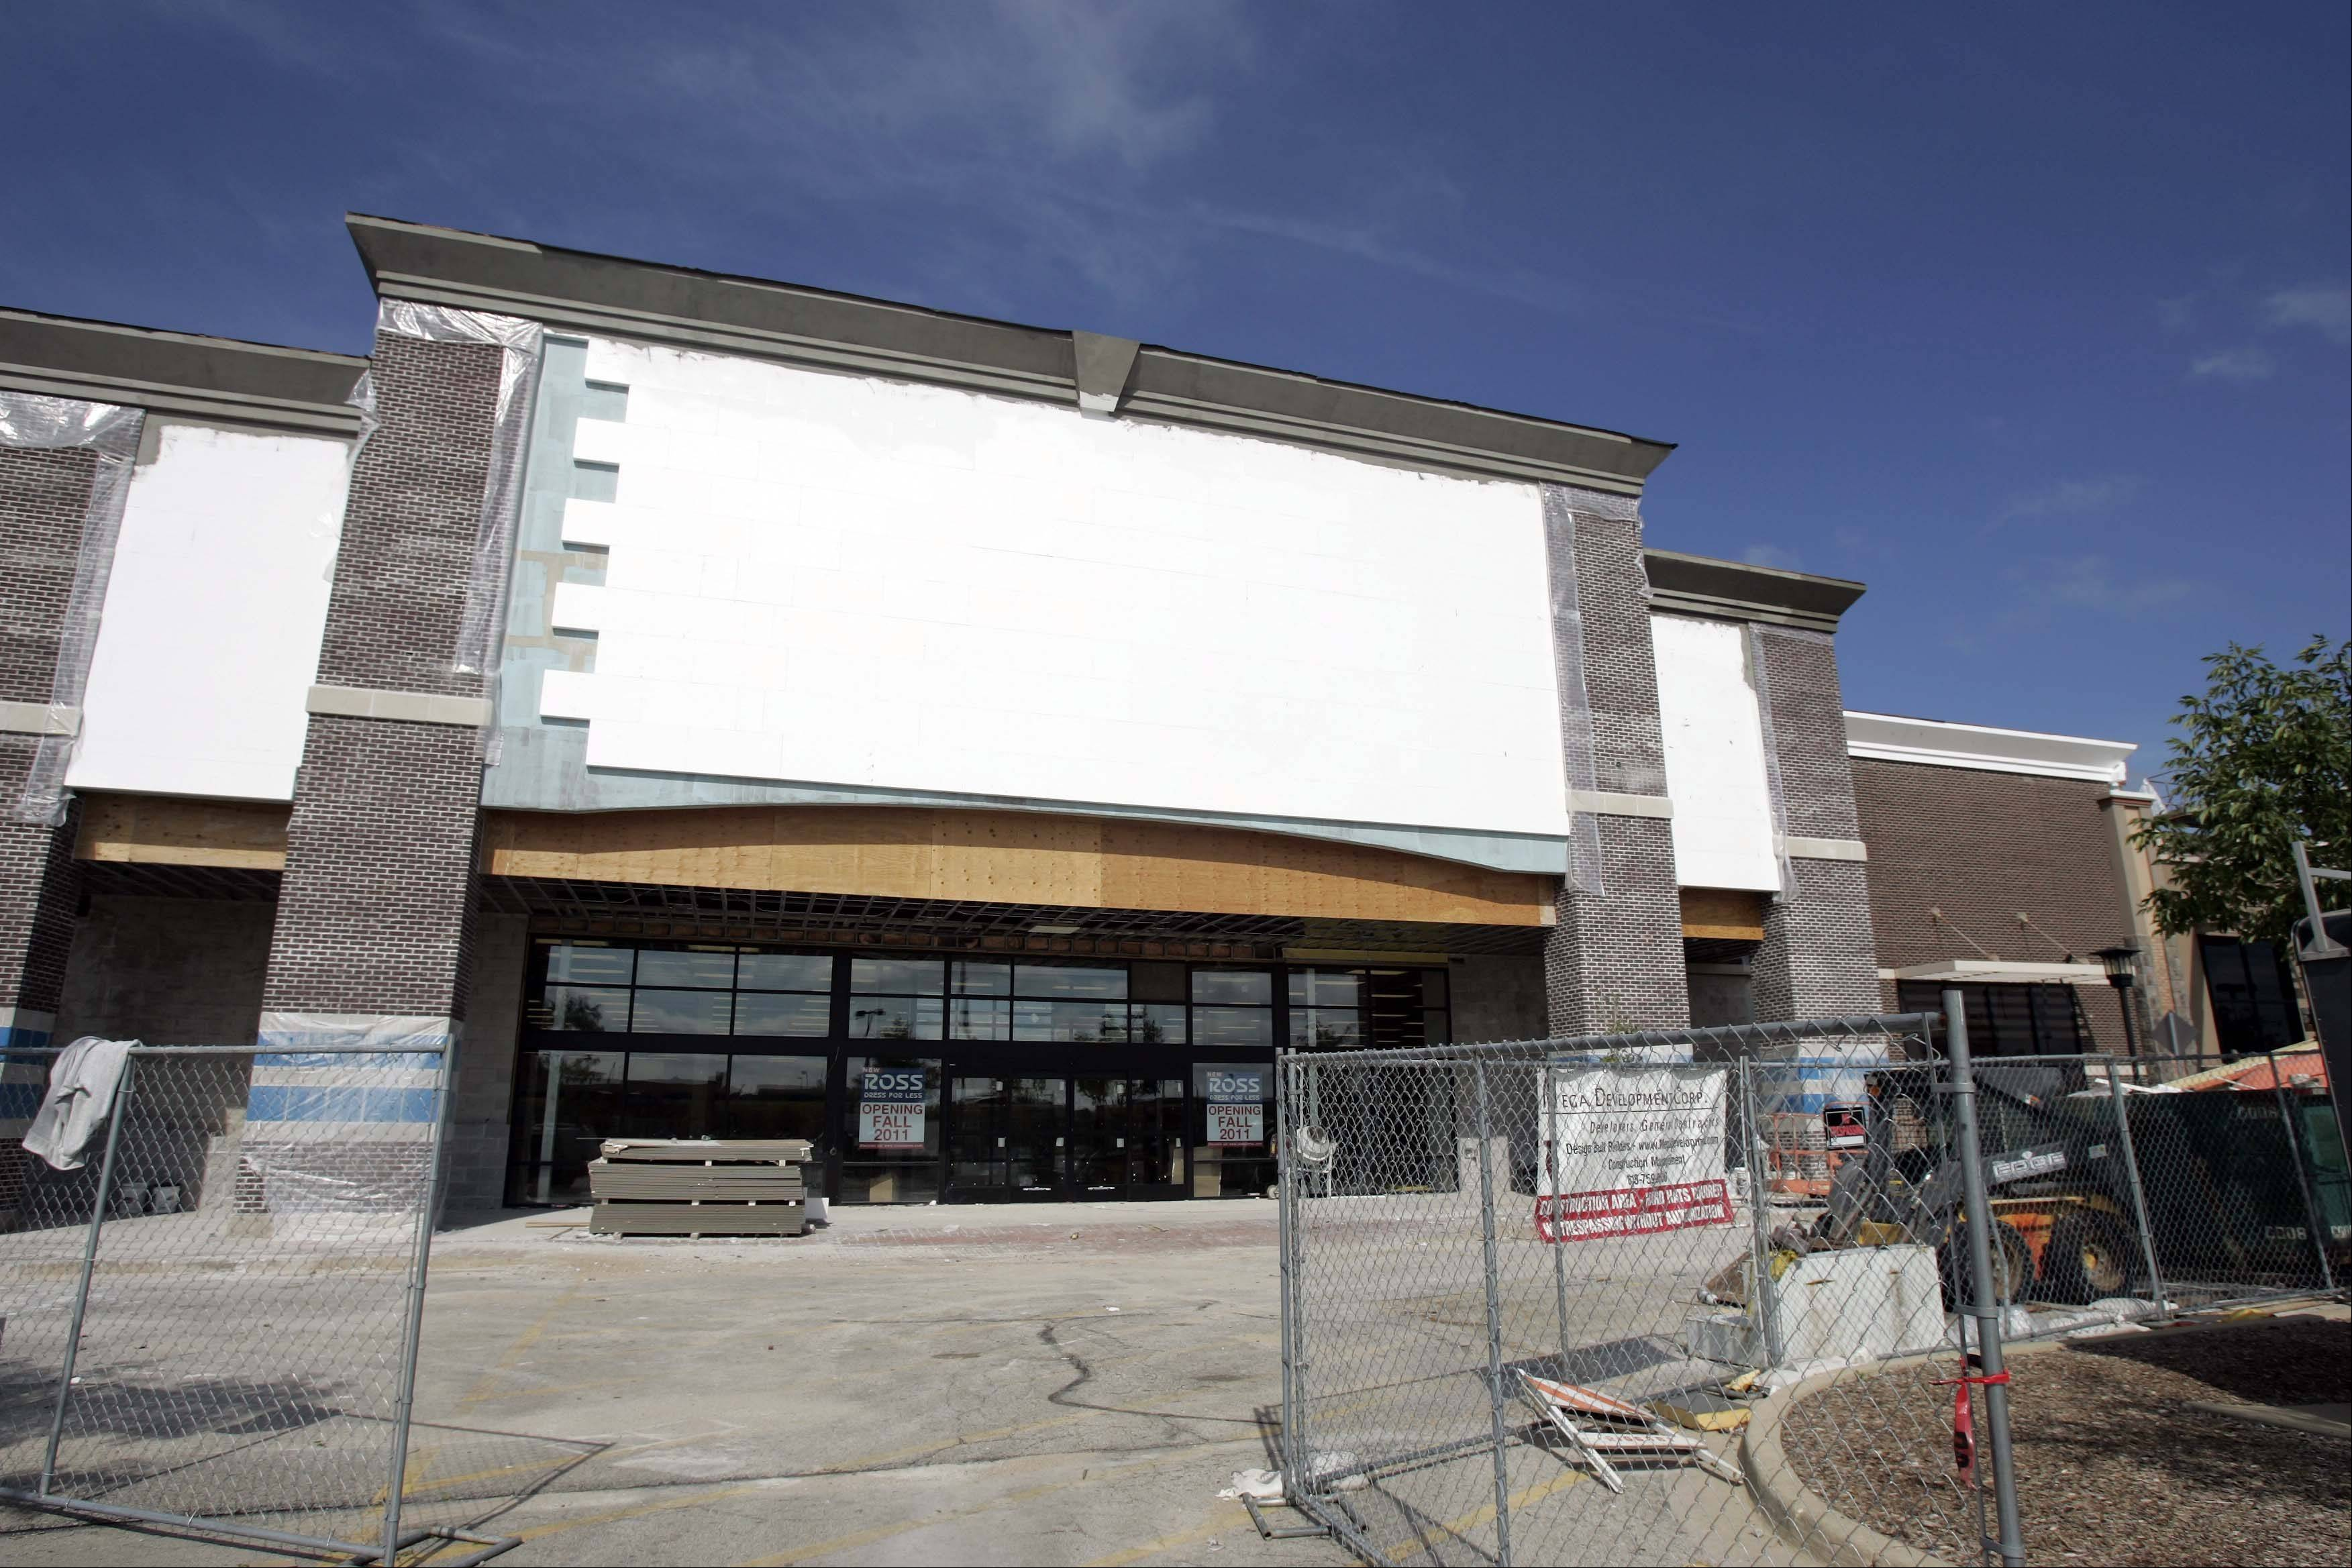 Construction continues this week on the new Ross Dress for Less shop in the Algonquin Commons on Randall Road. The store is scheduled to open Oct. 8 and at 11 other locations including South Elgin, Bloomingdale, Schaumburg, Naperville and Crystal Lake.